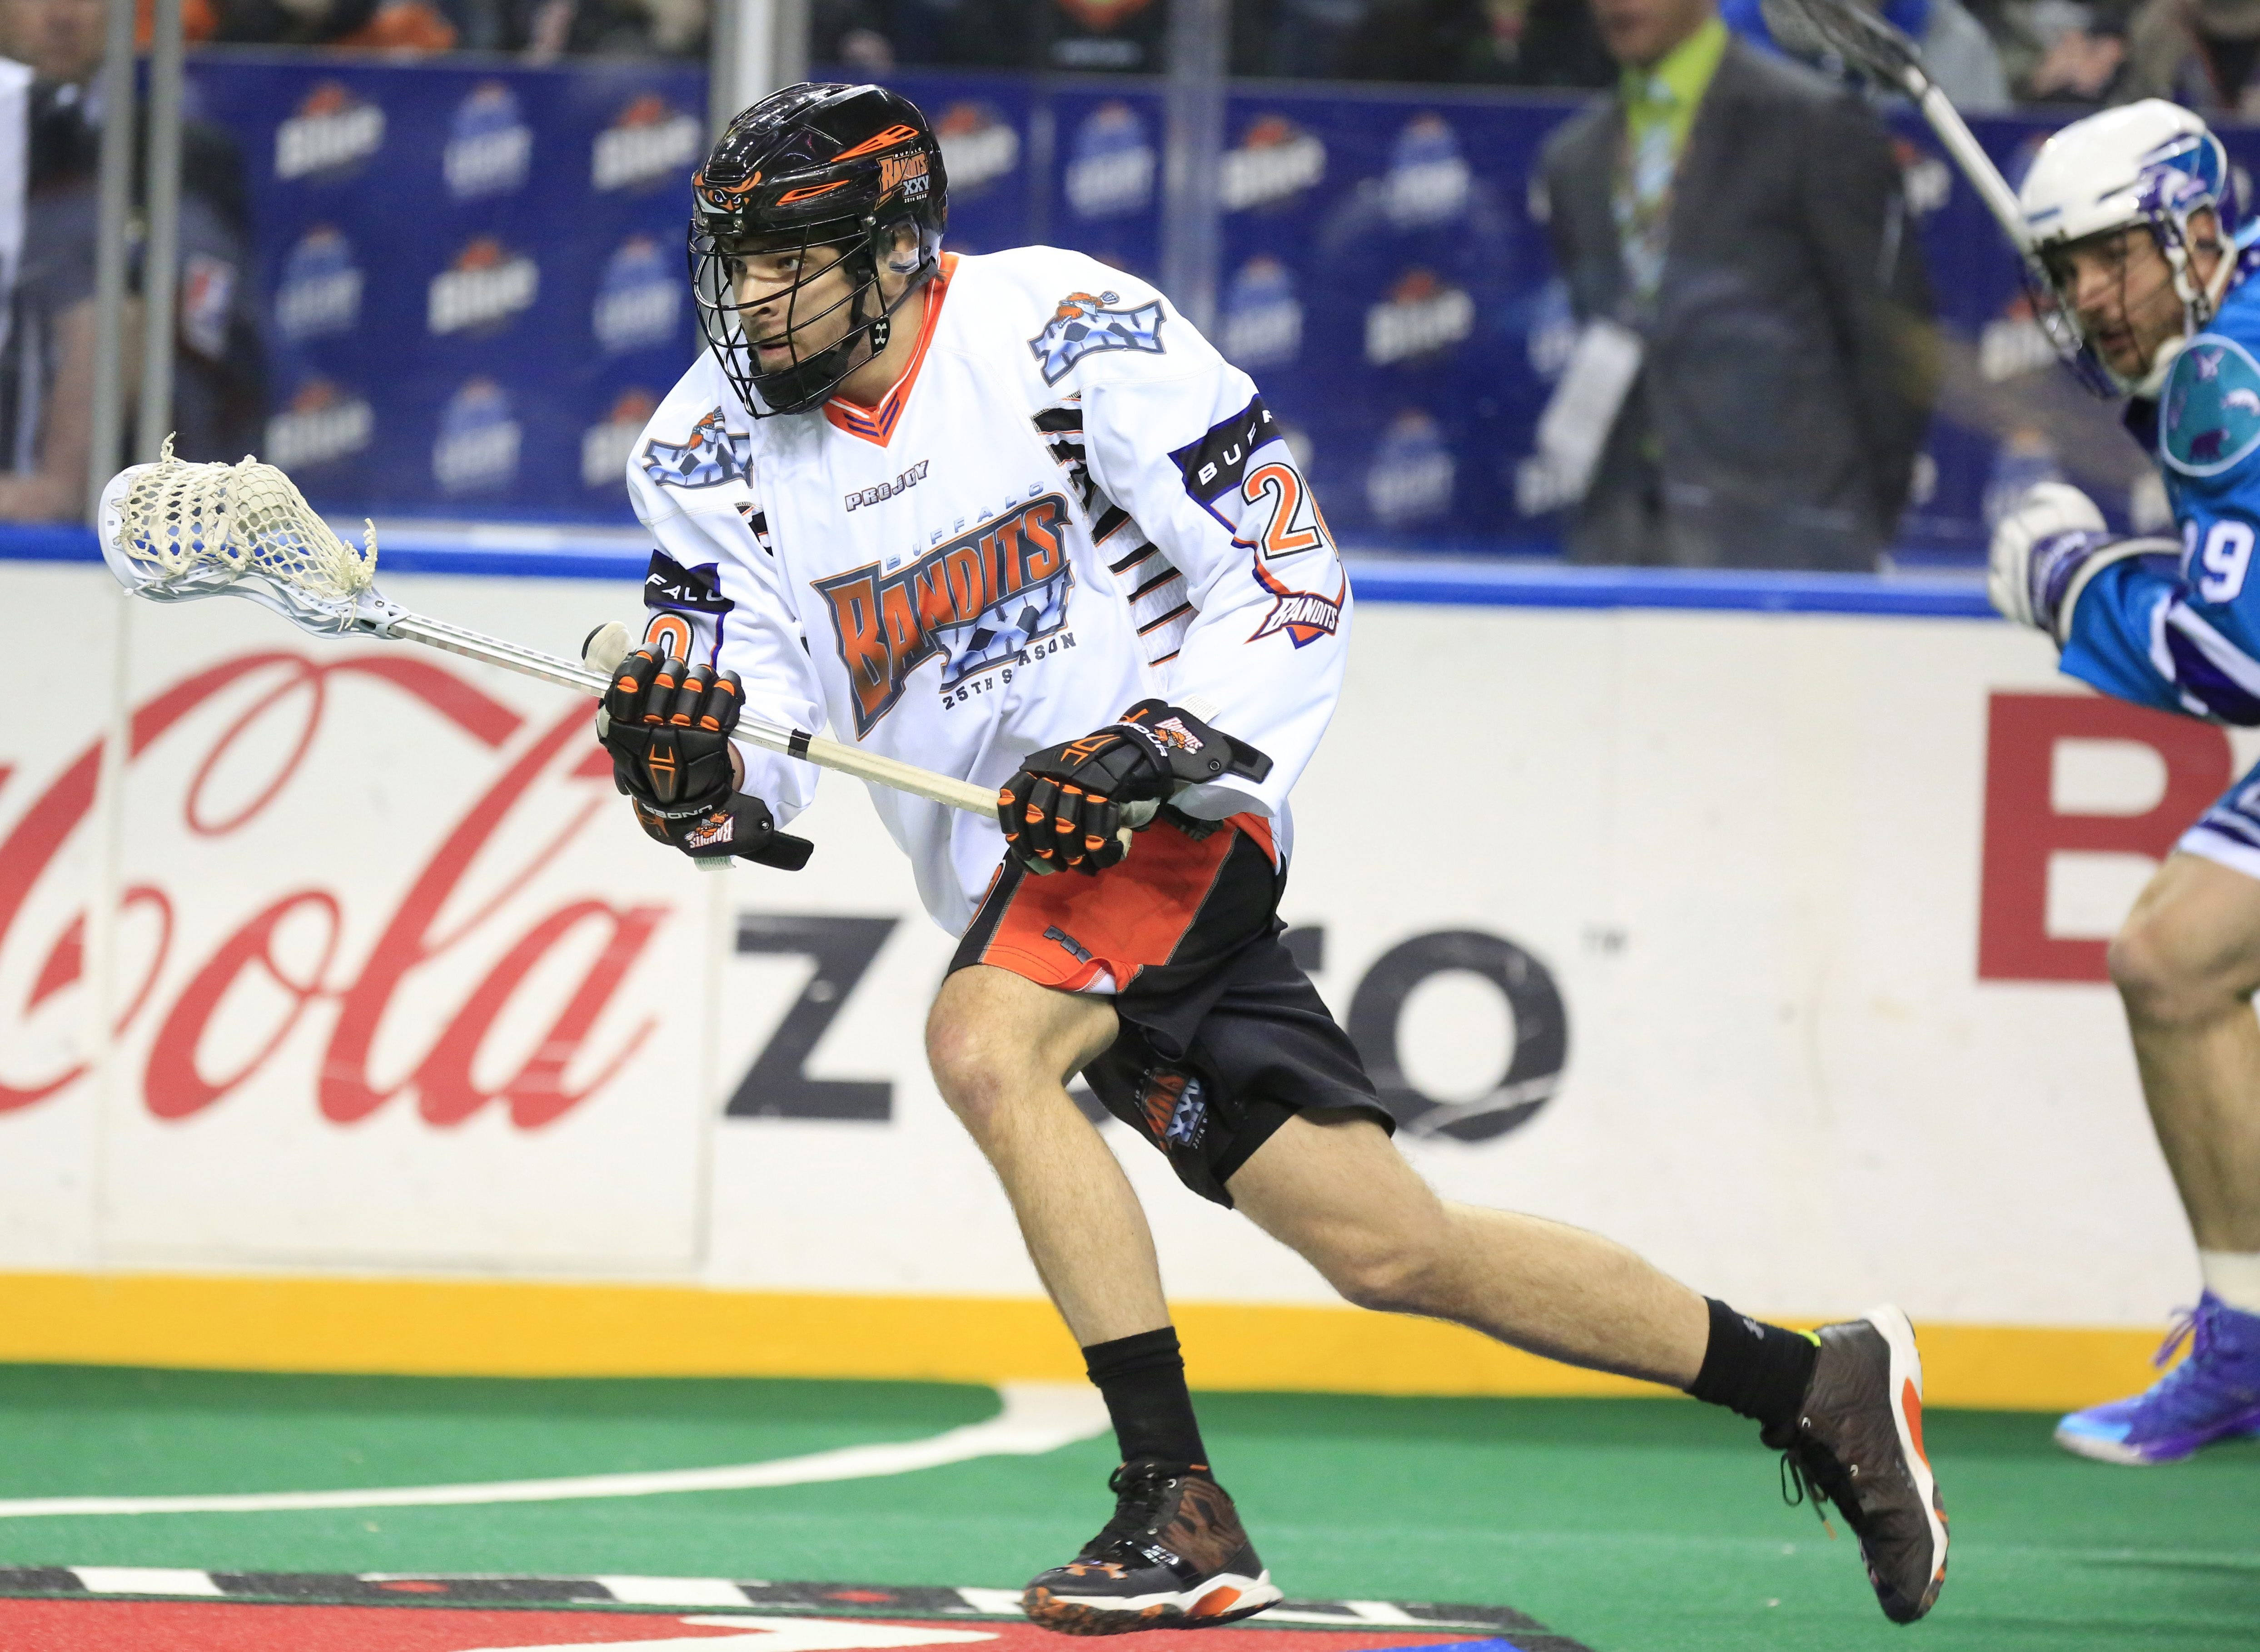 The Buffalo Bandits' Nick Weiss grabs a loose ball against the Rochester KnightHawks during action last season. (Harry Scull Jr./Buffalo News)